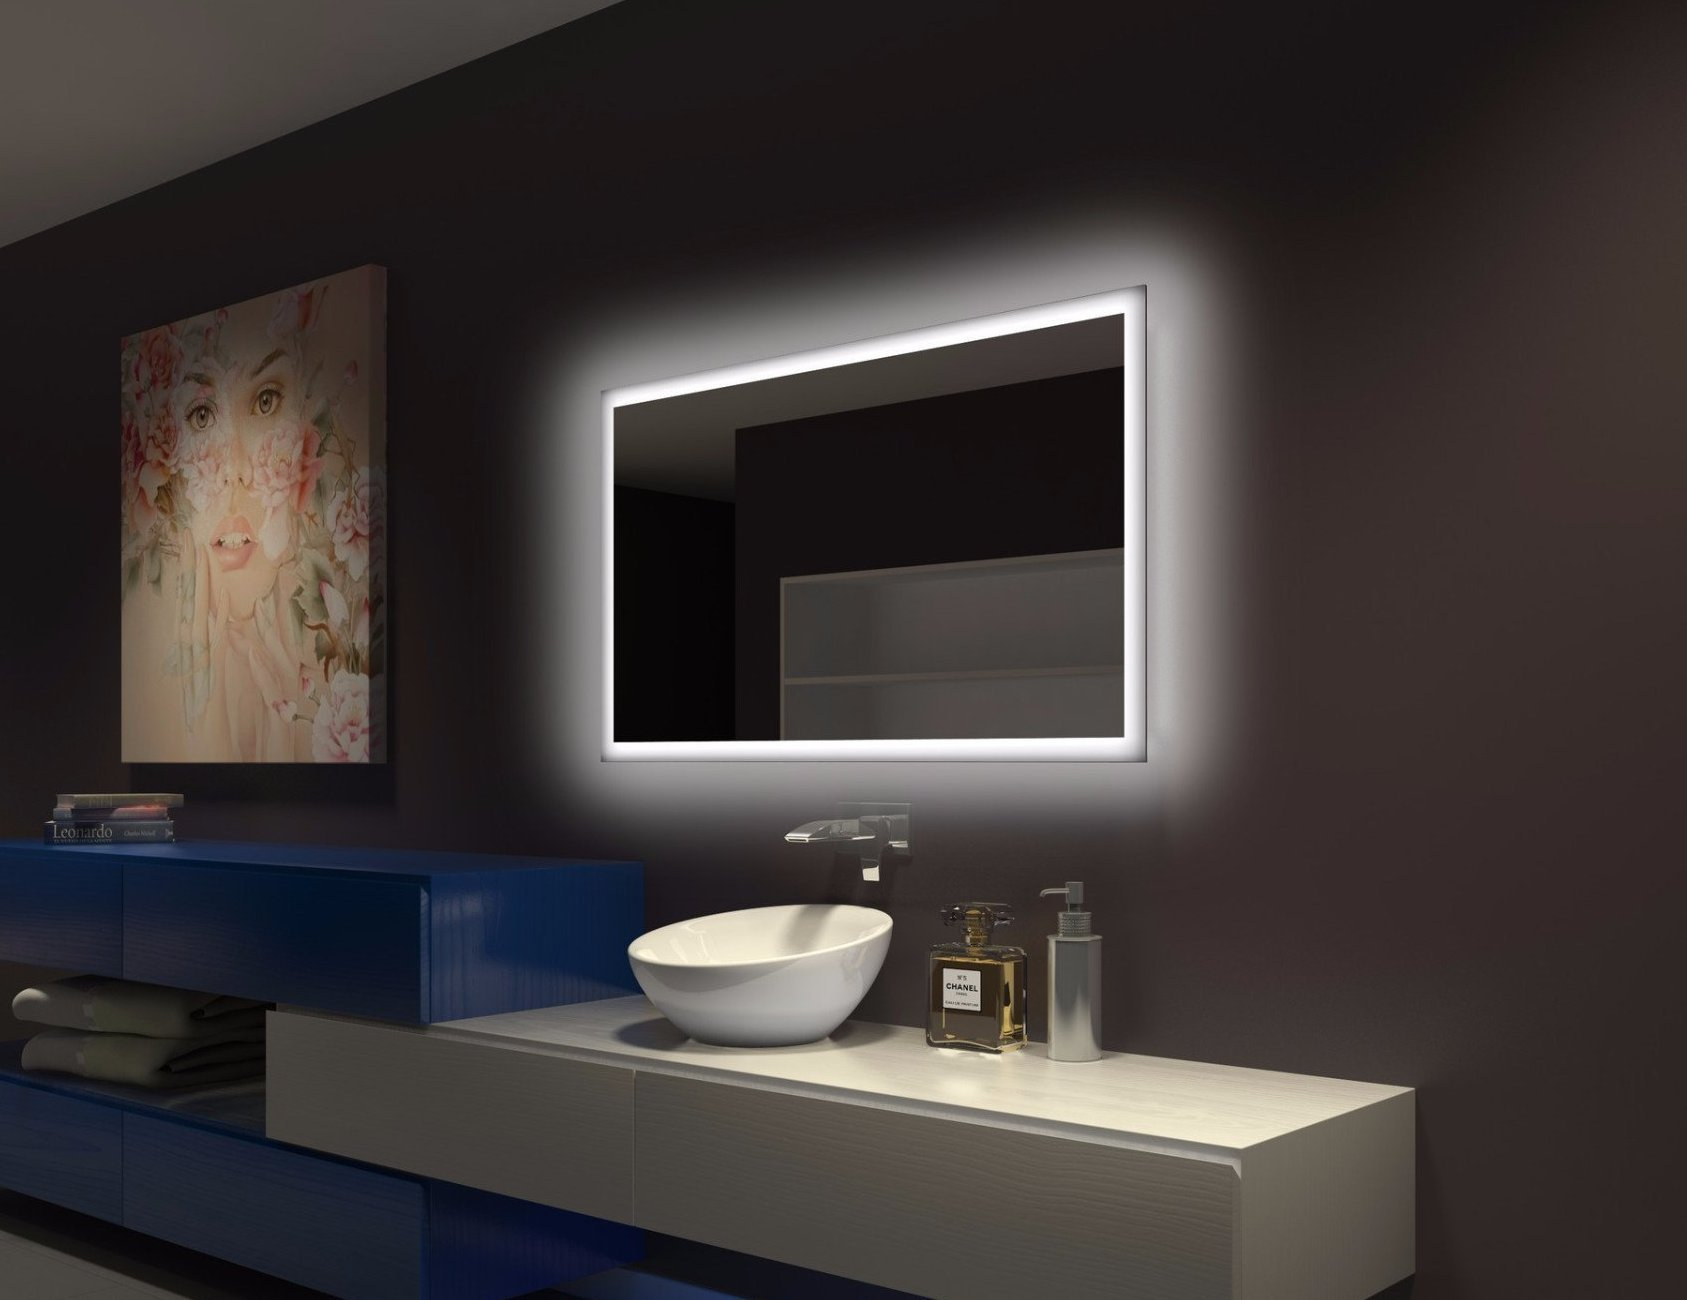 BACKLIT Bathroom MIRROR RECTANGLE 55 X 28 in